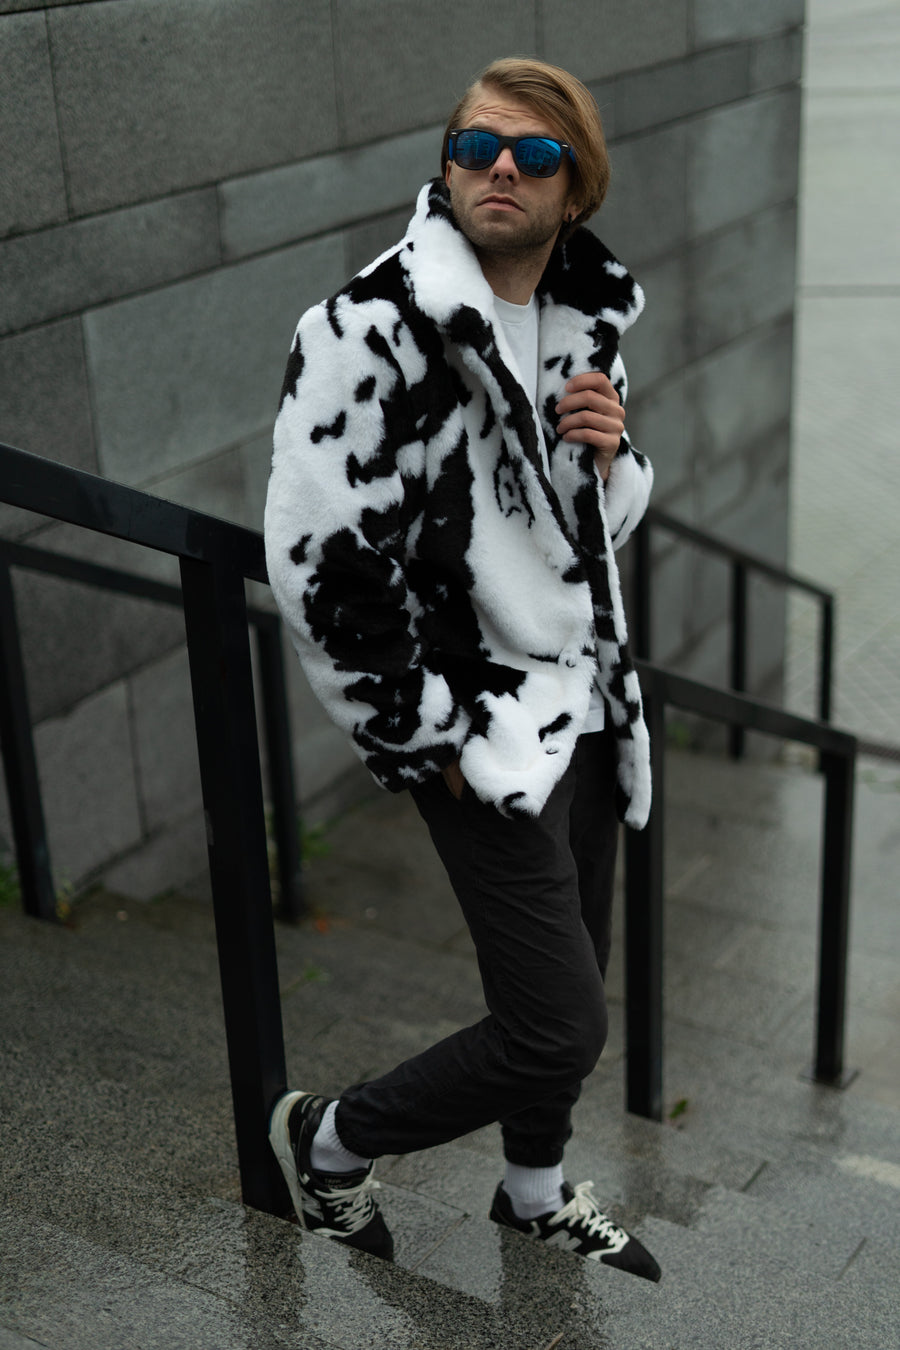 Cow print collared jacket